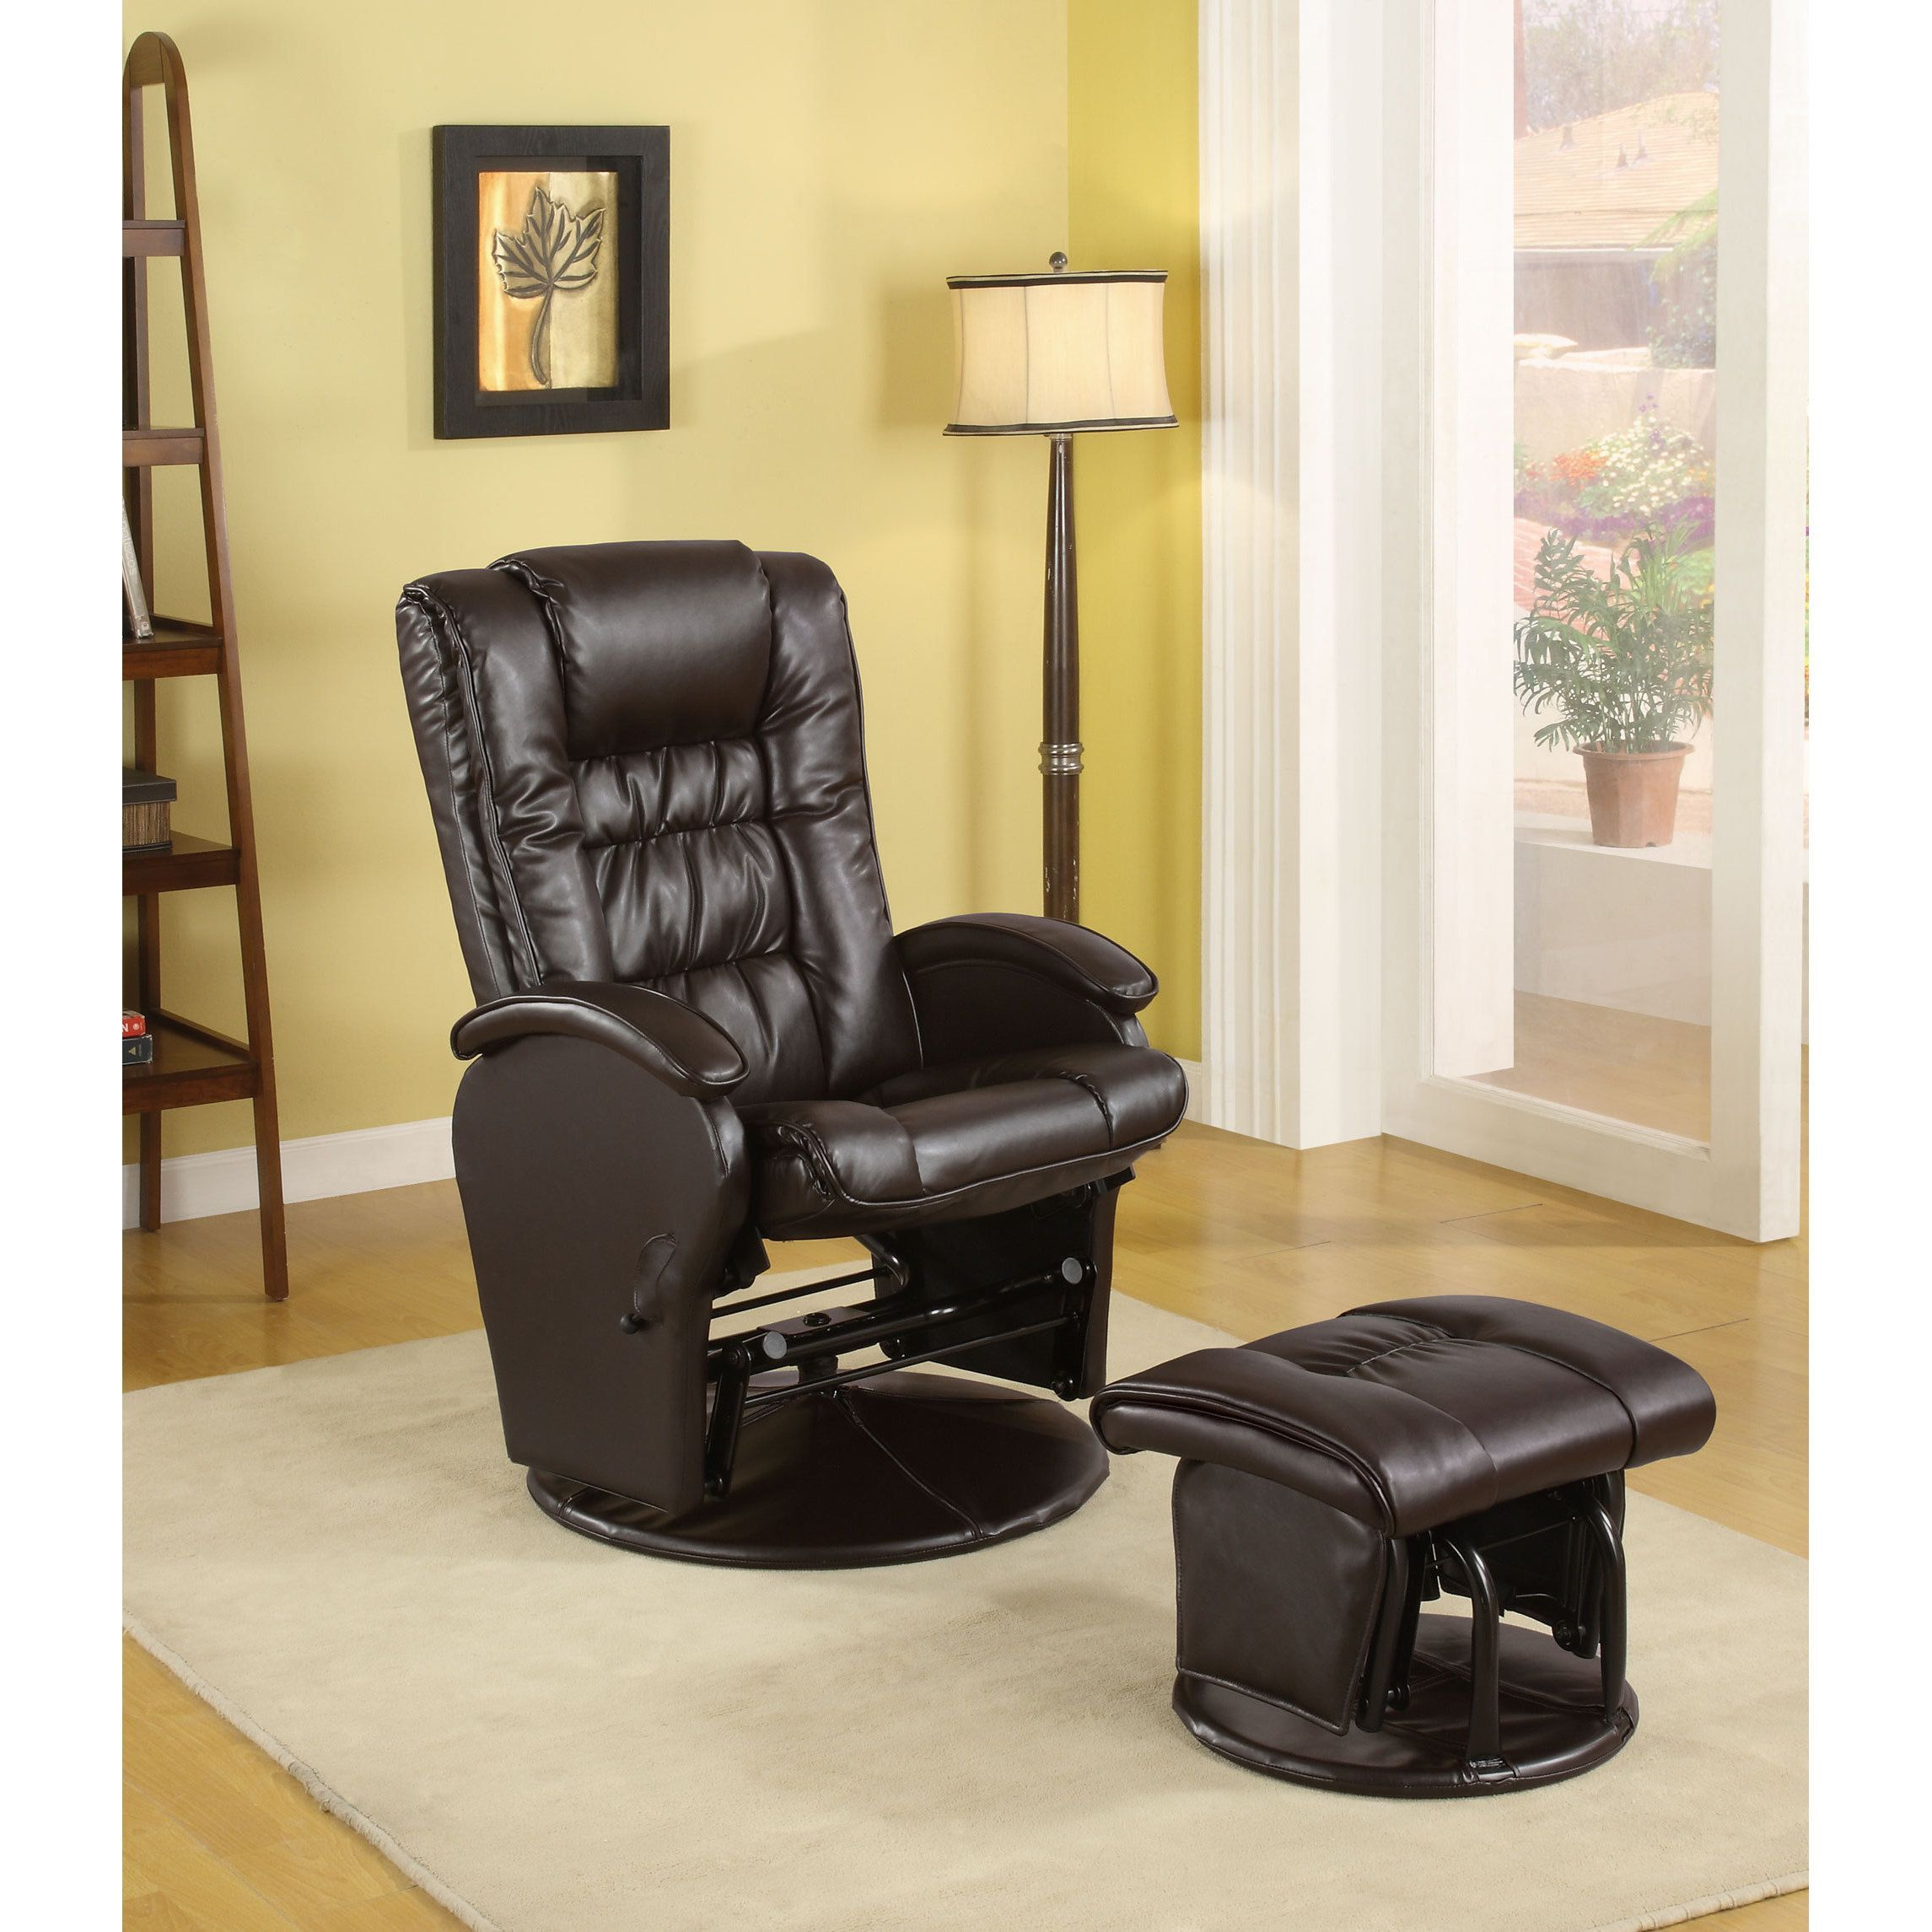 Wondrous Coaster Company Vinyl Deluxe Glider With Ottoman Glider Camellatalisay Diy Chair Ideas Camellatalisaycom